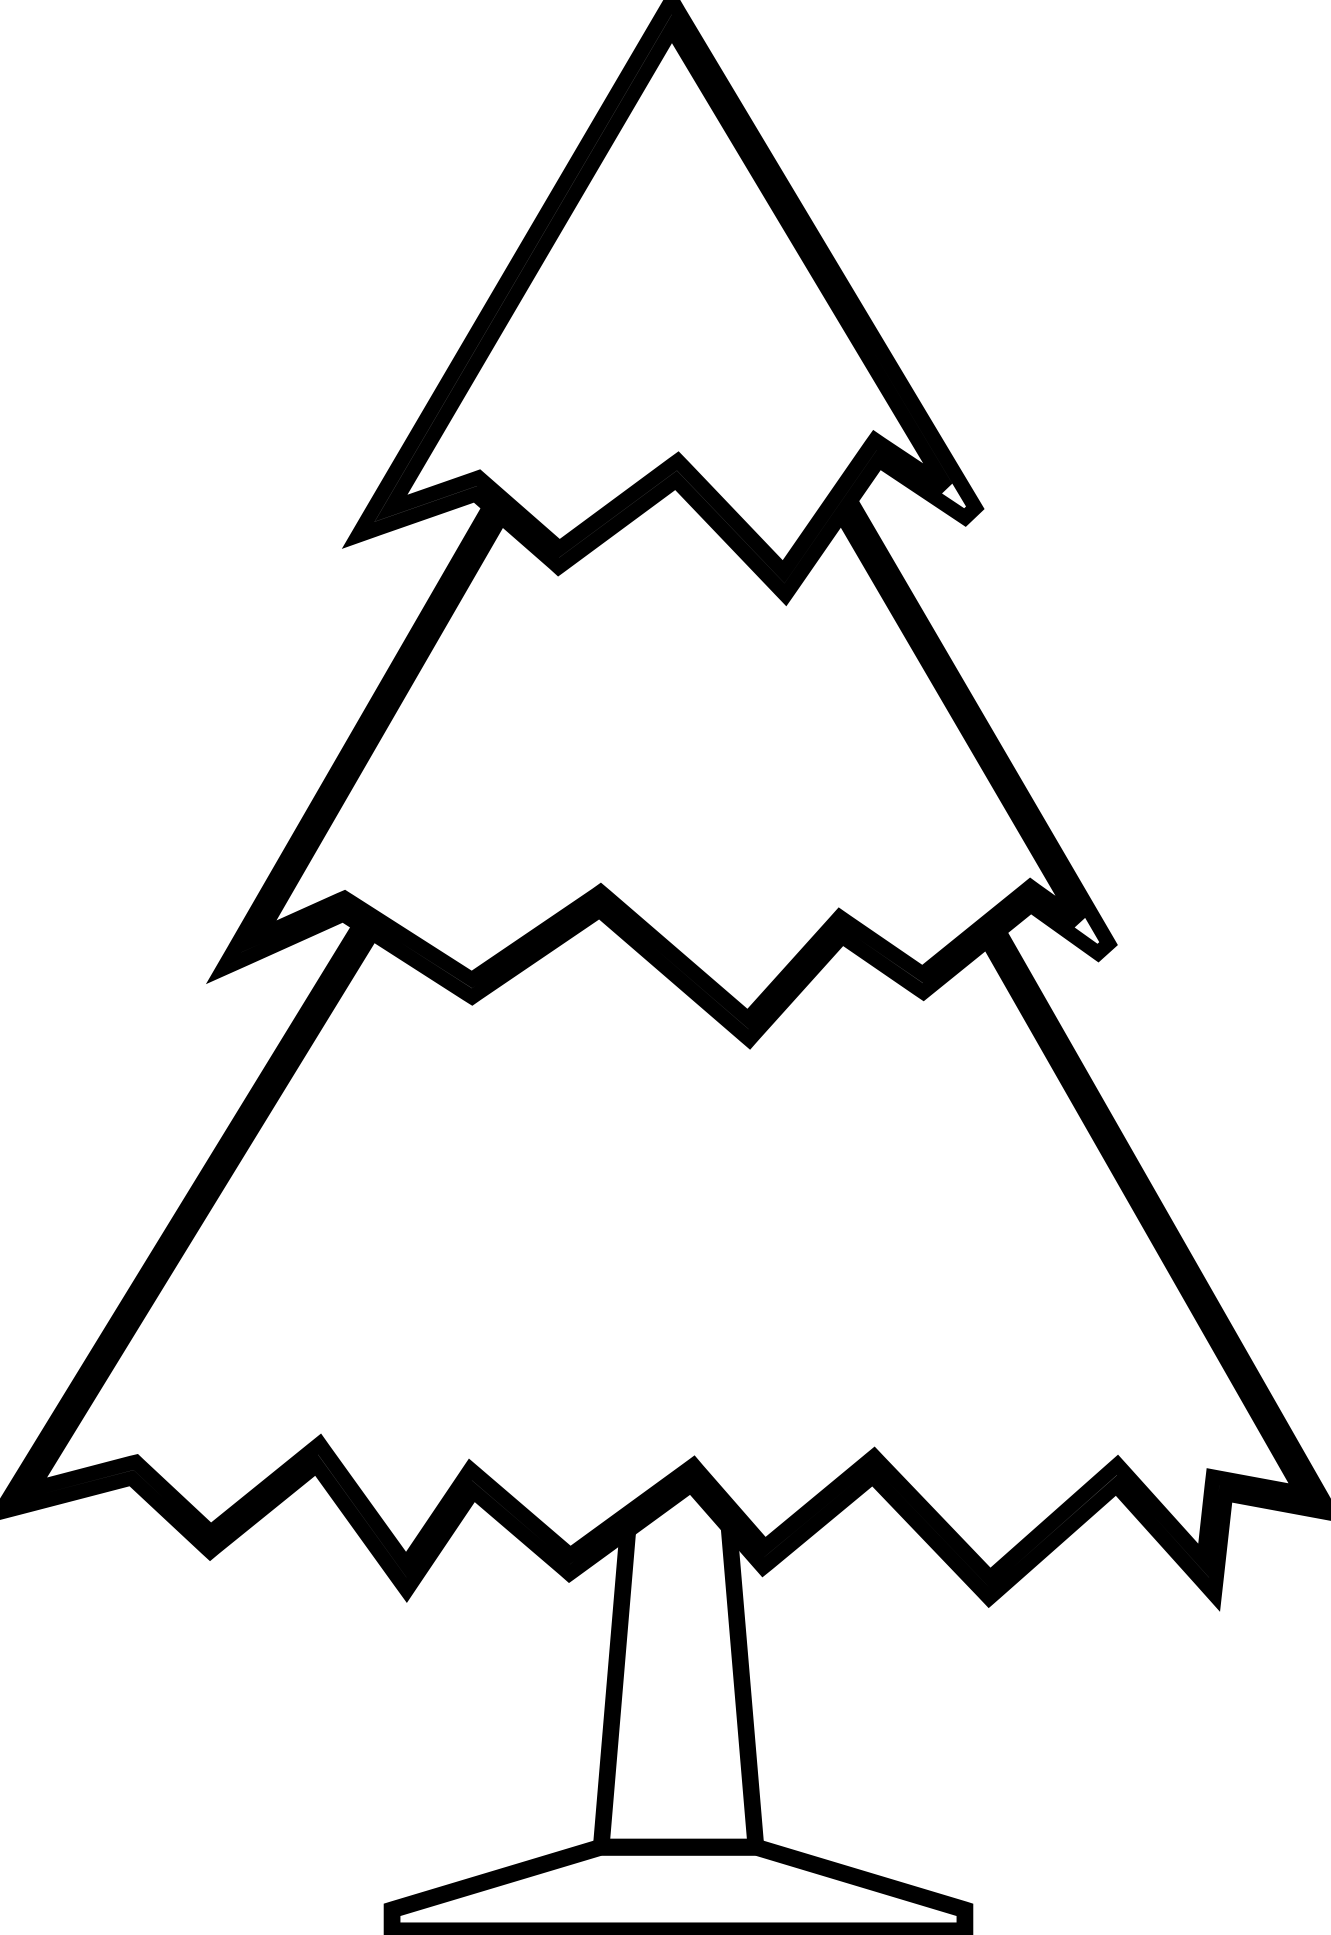 Clipart Christmas Tree Black White | Clipart Panda - Free Clipart ...